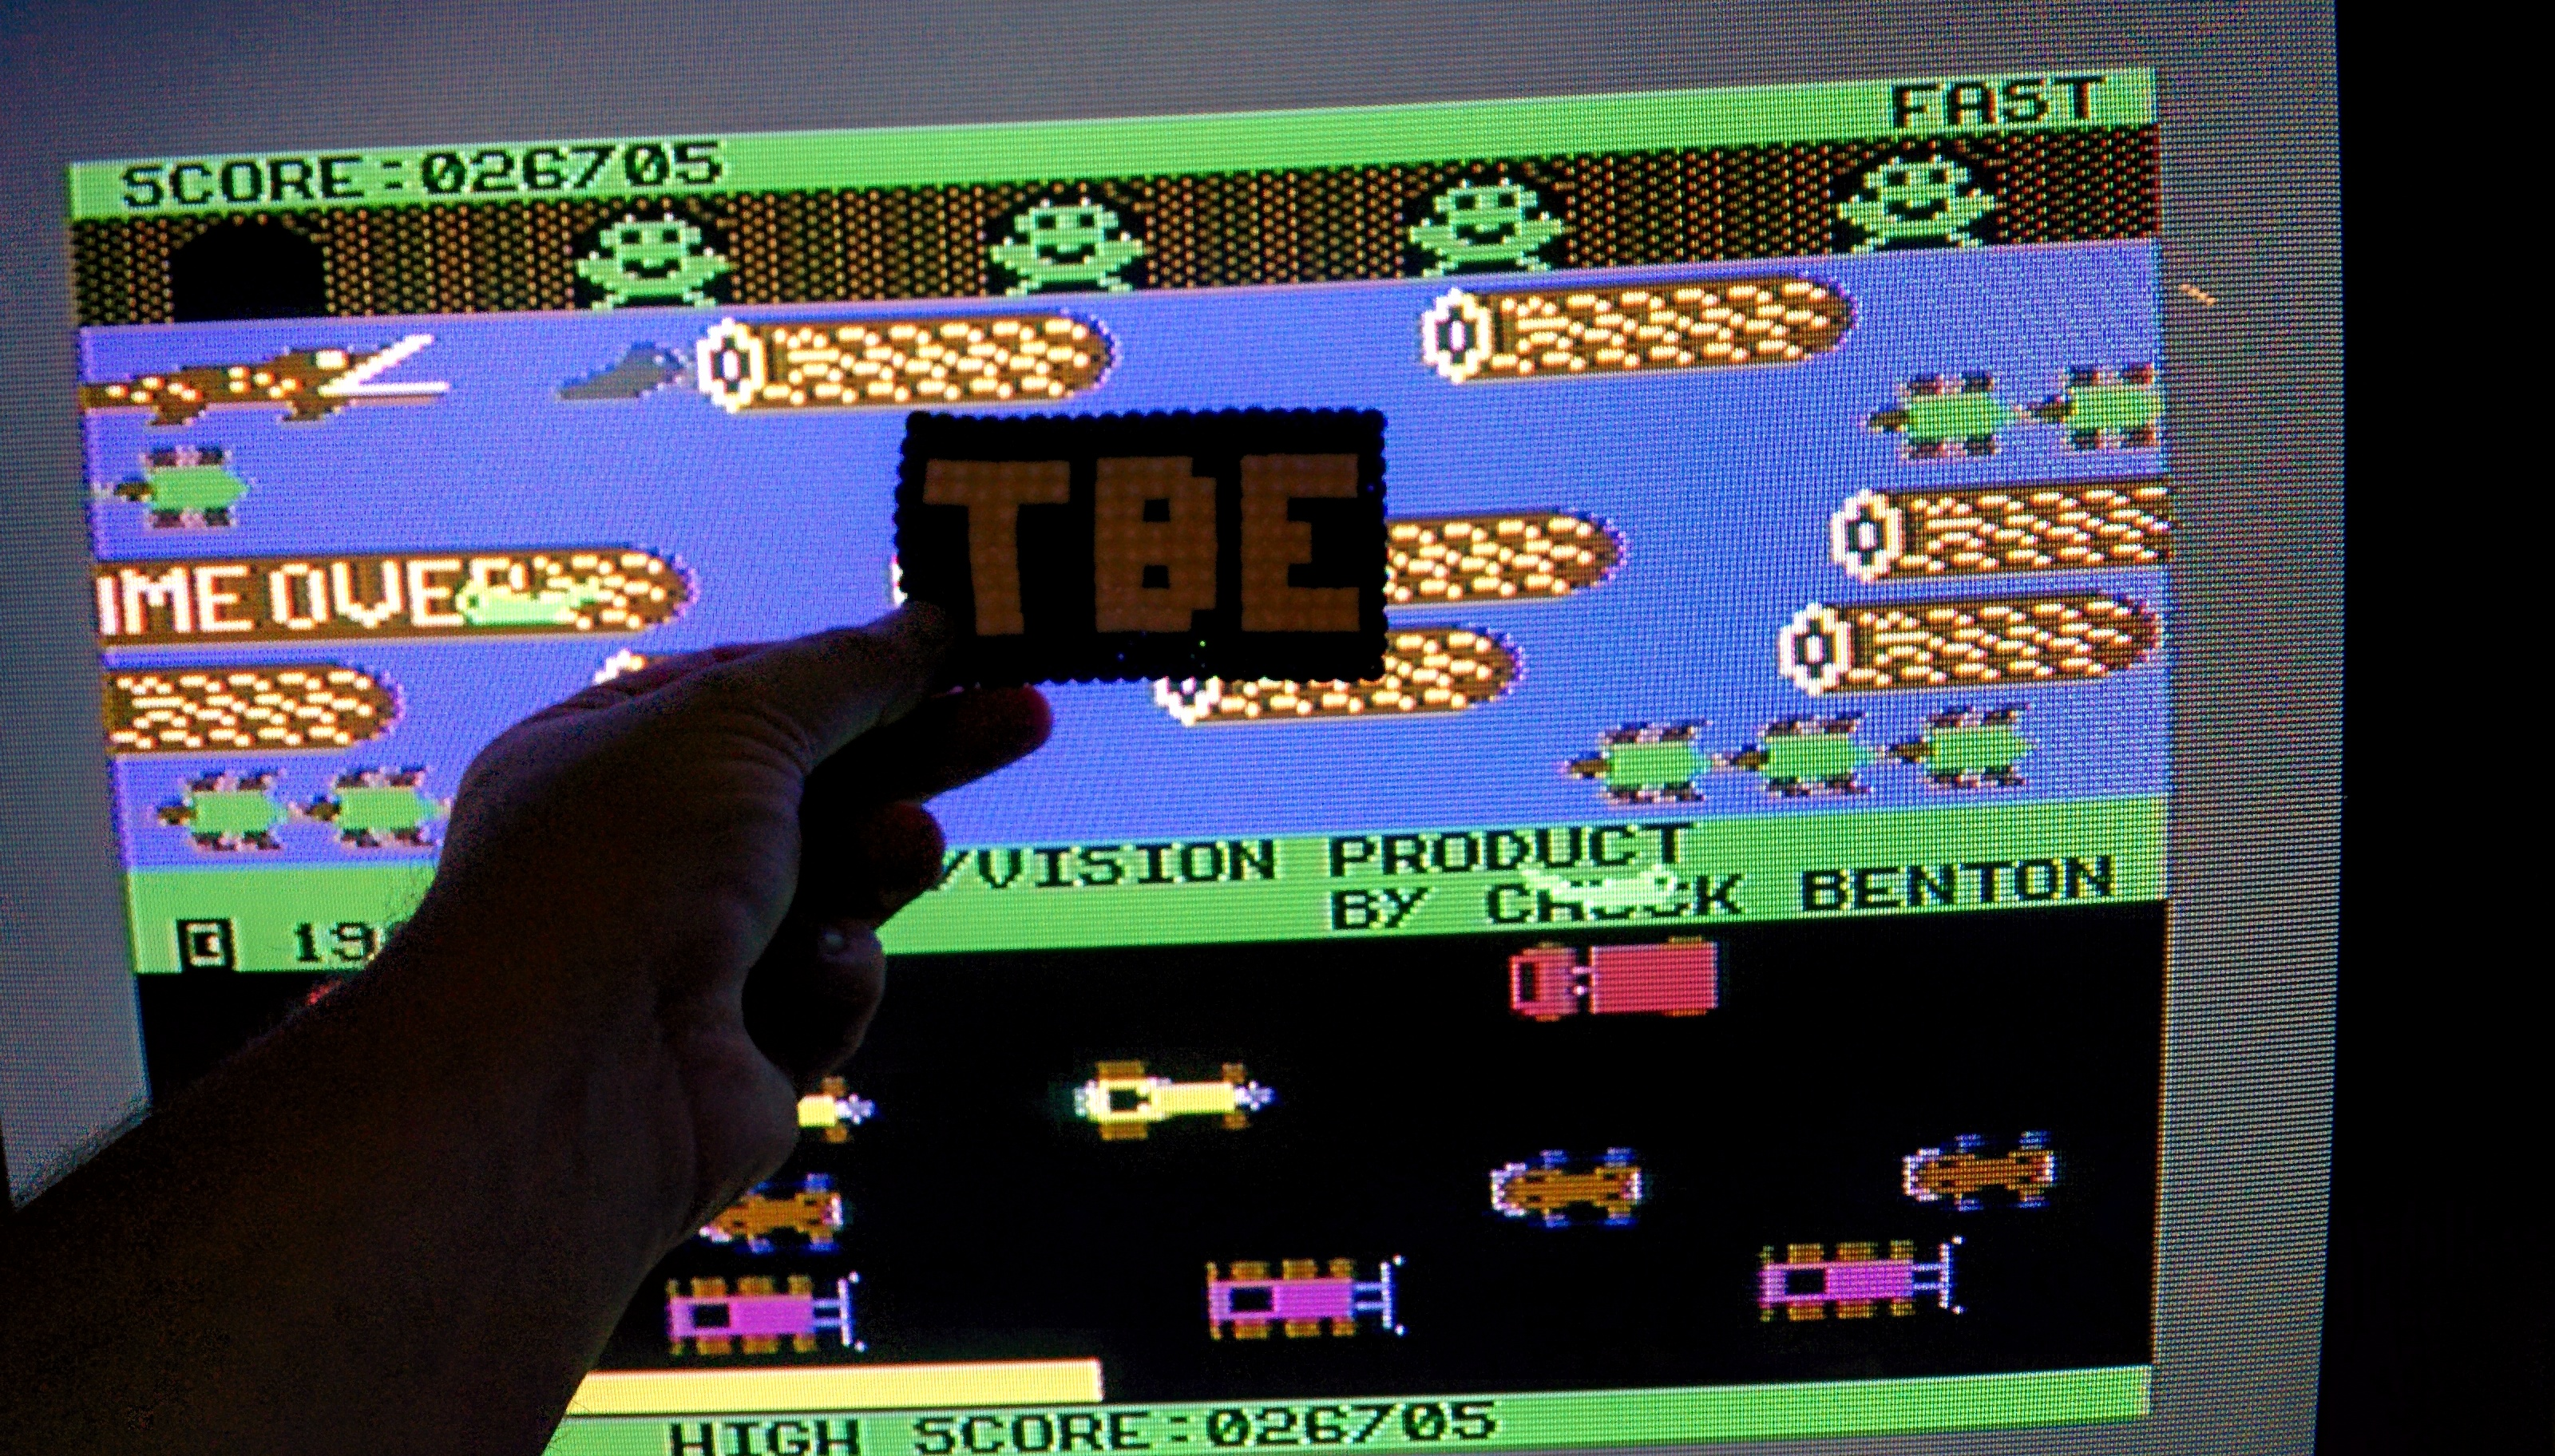 Sixx: Frogger: Sierra (Commodore 64) 26,705 points on 2014-09-20 18:46:06